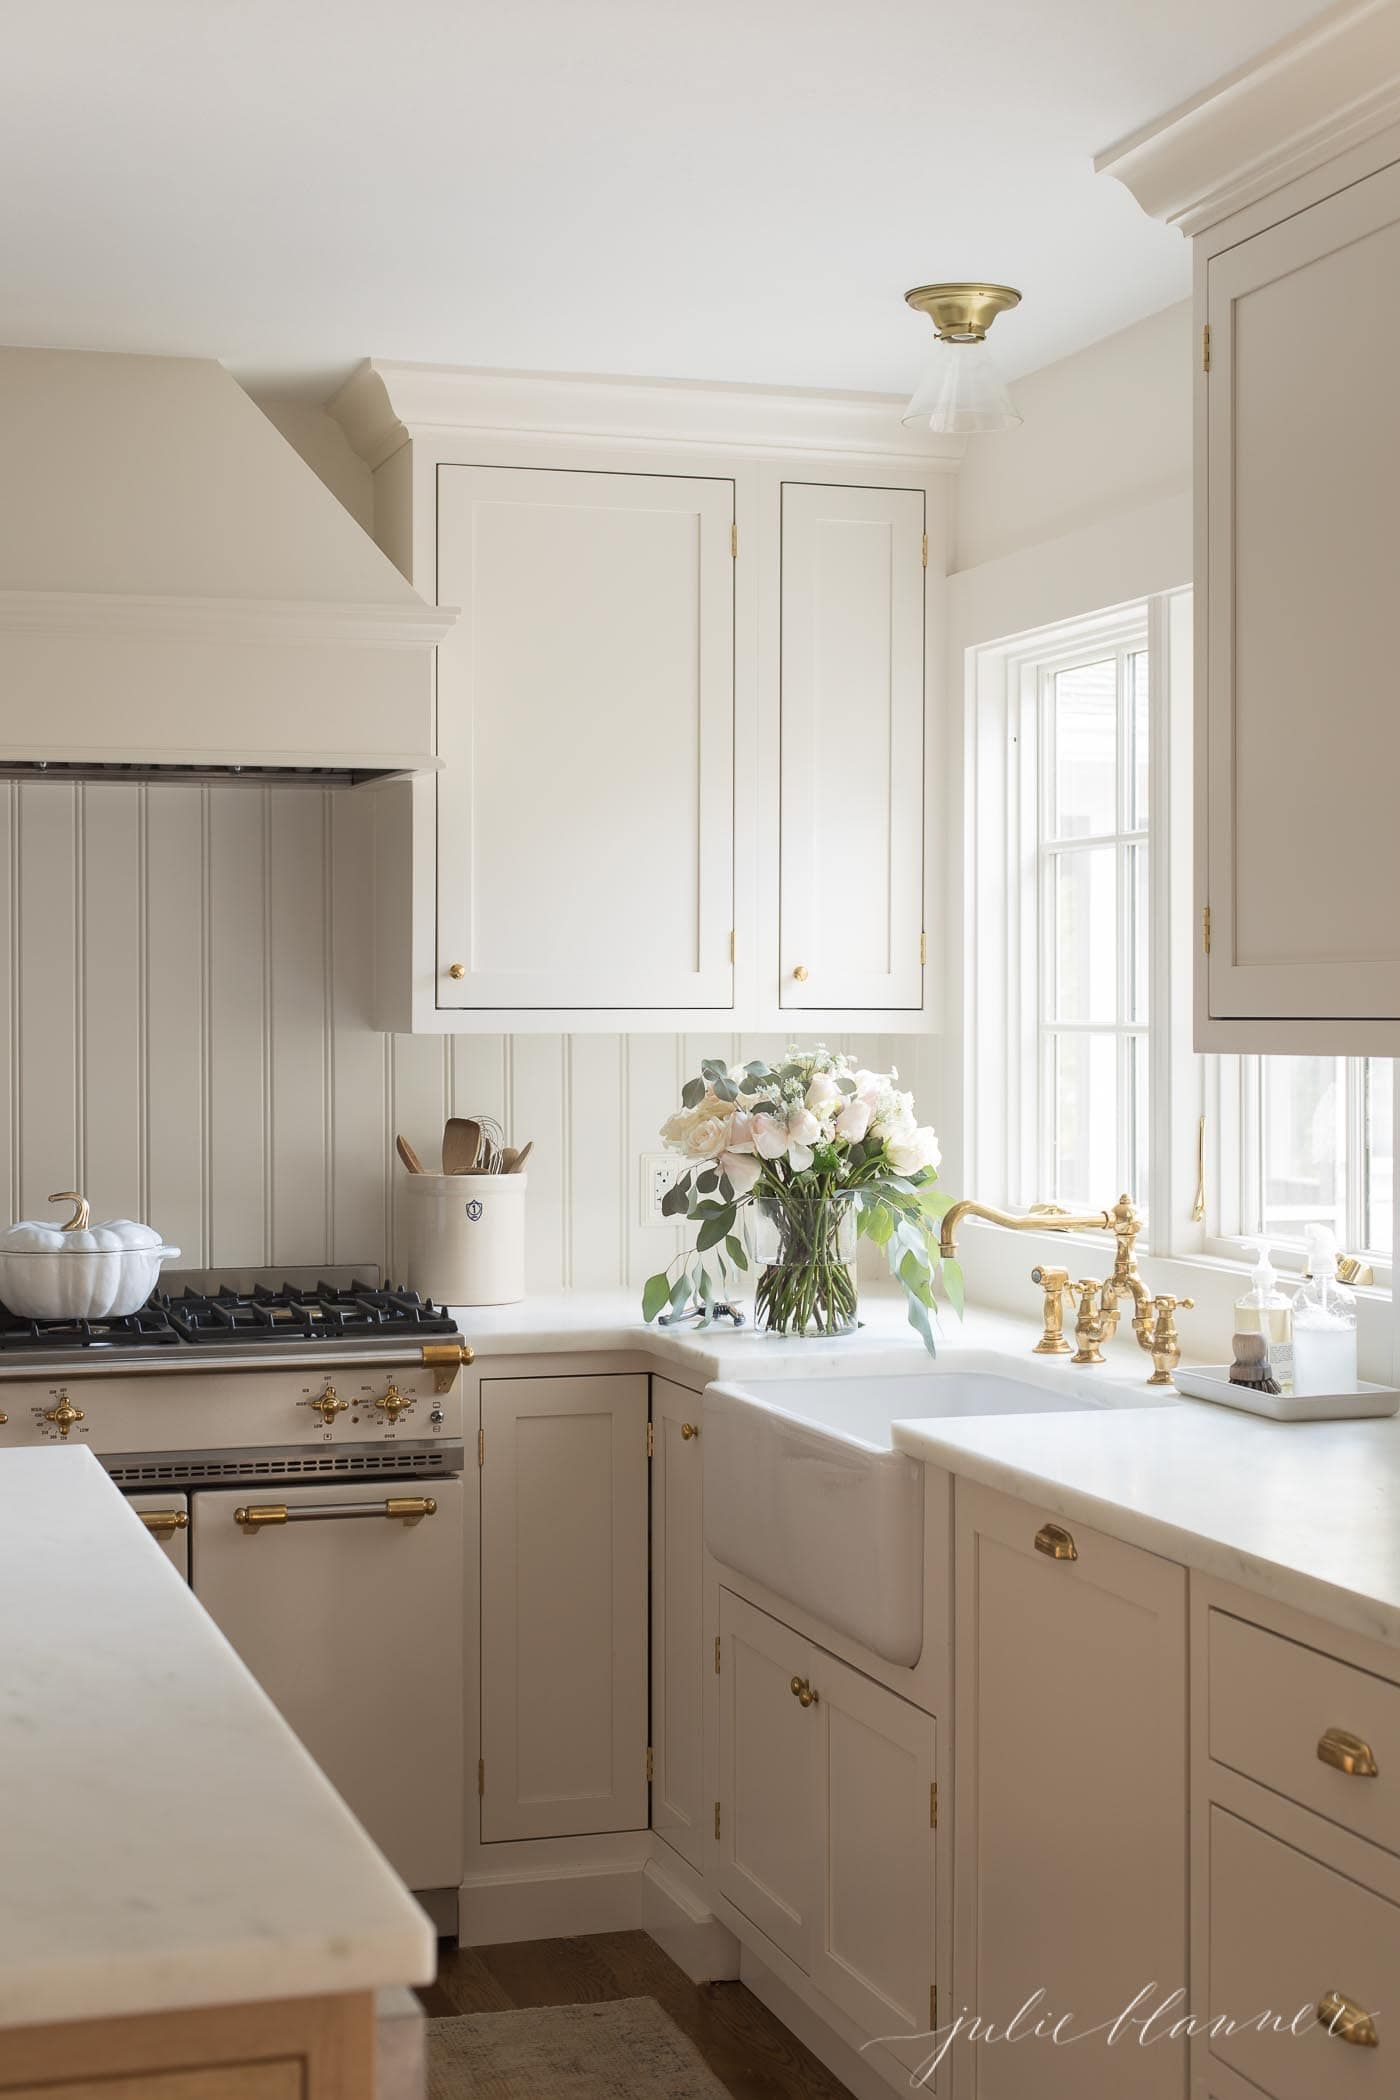 Cream Kitchen Cabinets The Prettiest Paint Color For Cream Kitchen Cabinets For A W Cream Kitchen Cabinets New Kitchen Cabinets Painted Kitchen Cabinets Colors